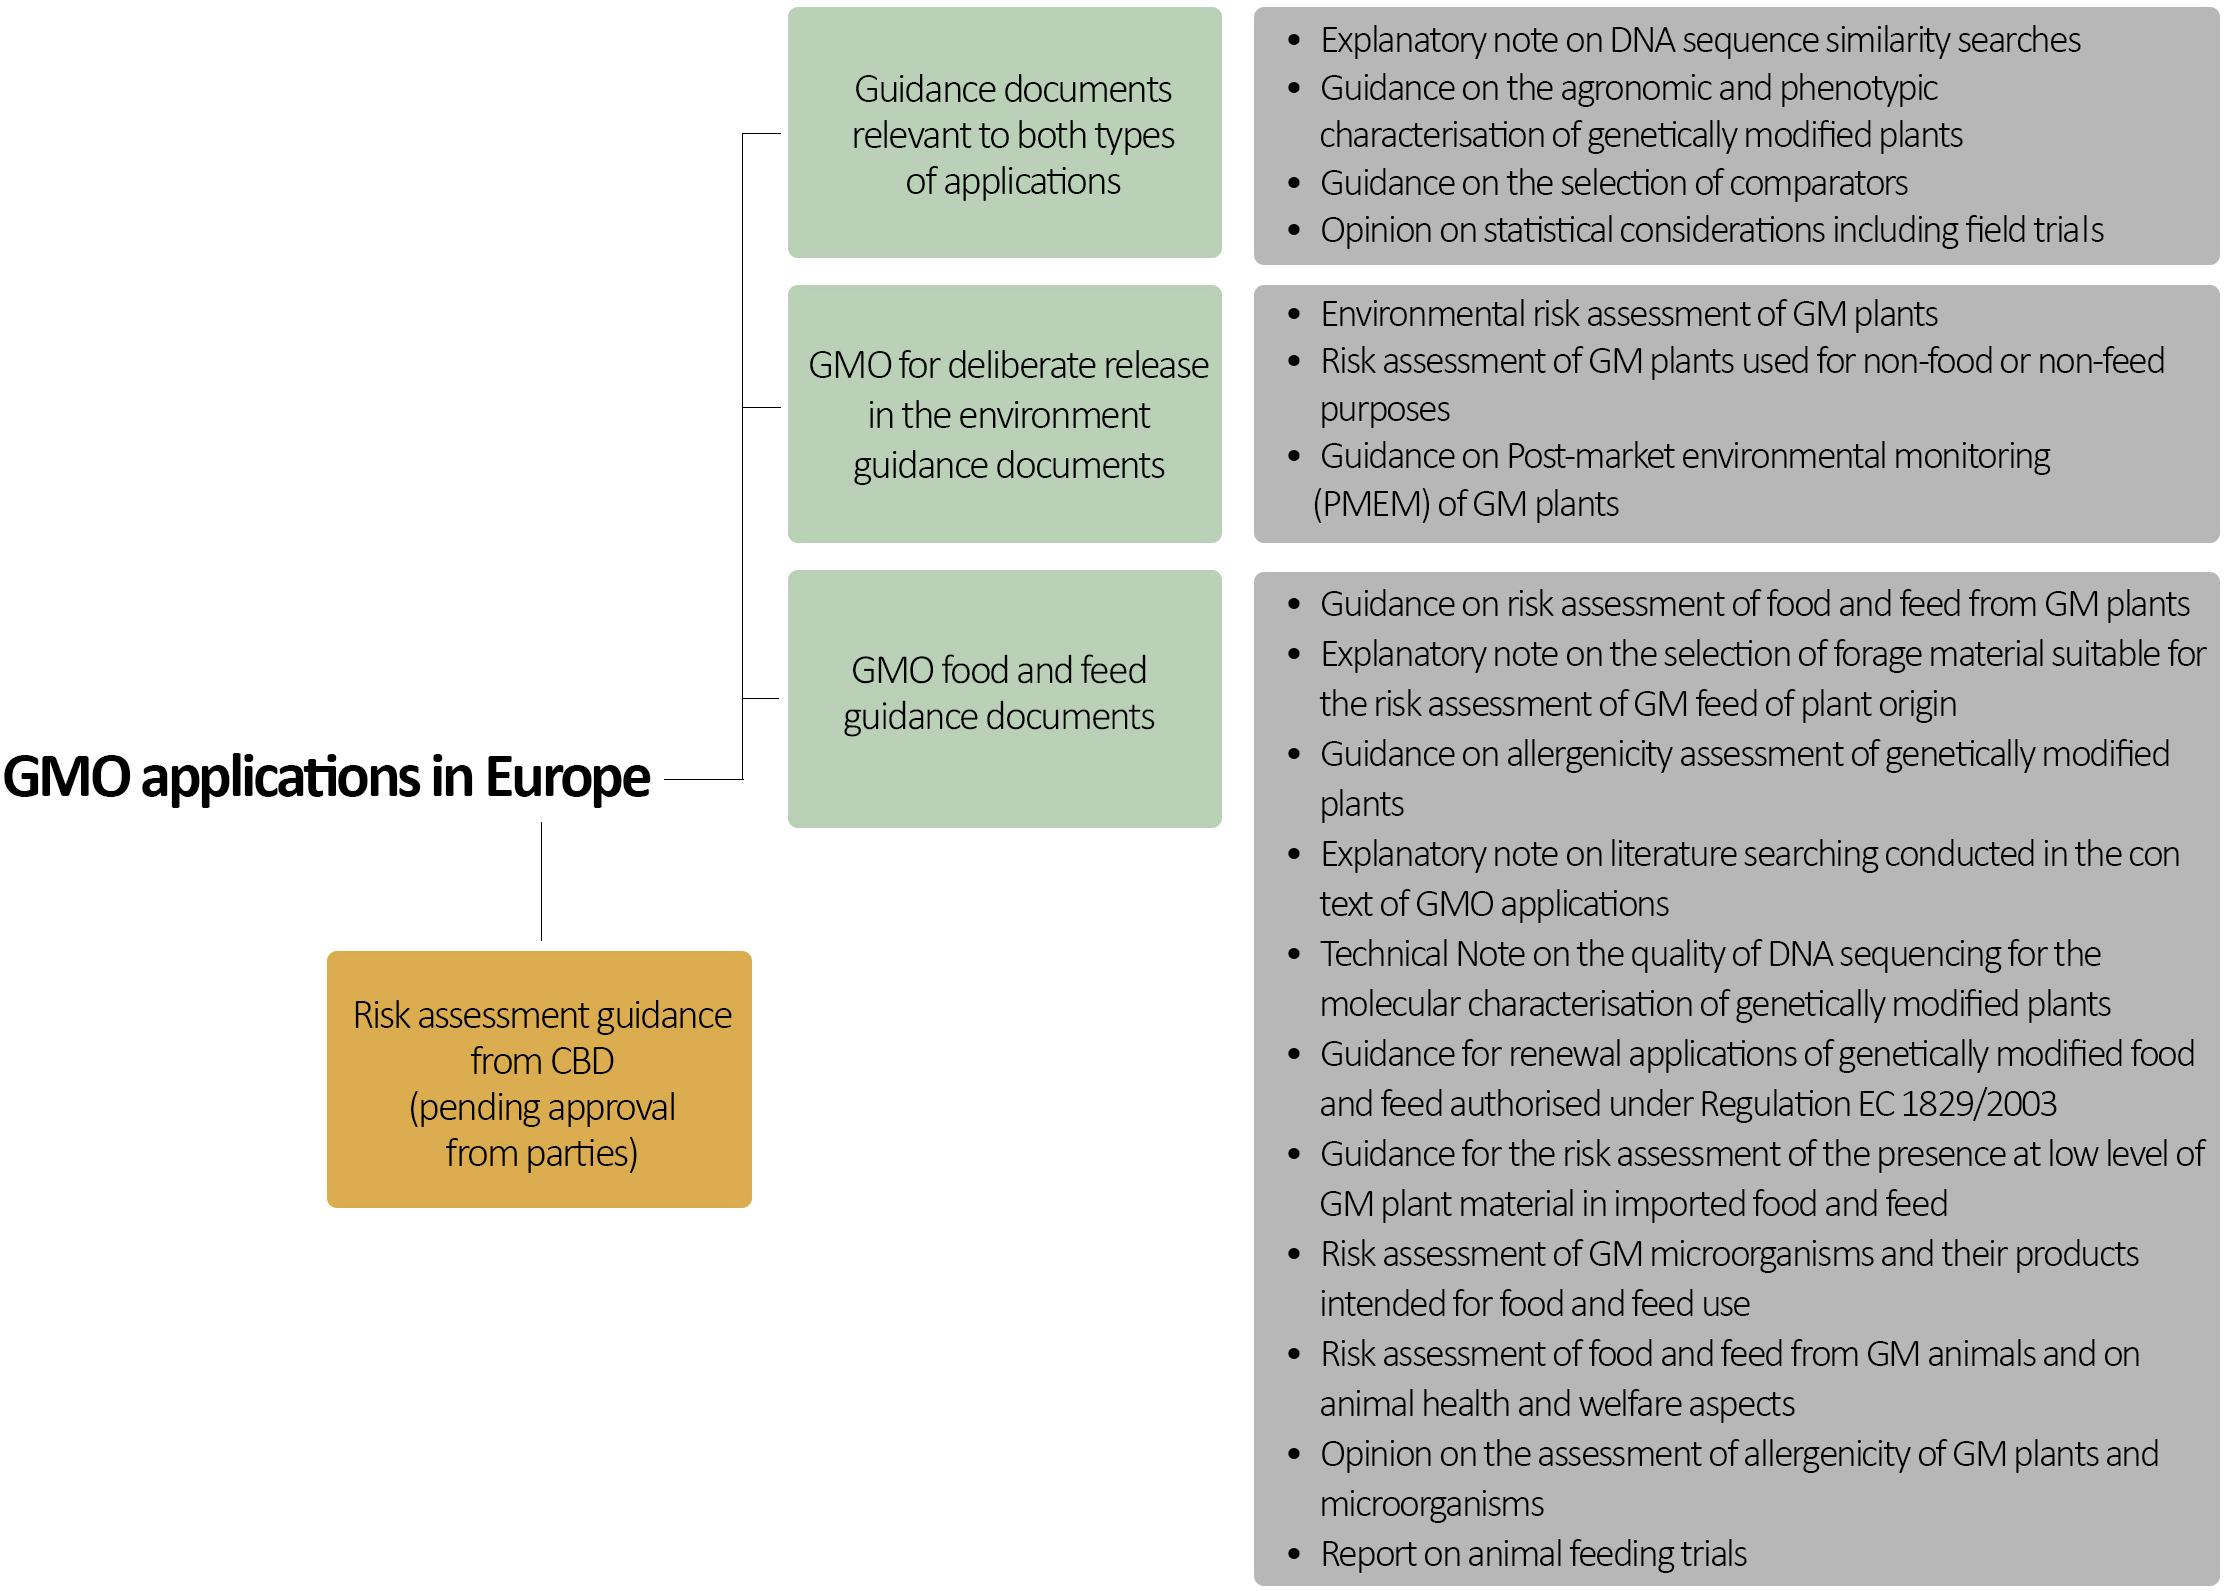 Frontiers | Revisiting Risk Governance of GM Plants: The